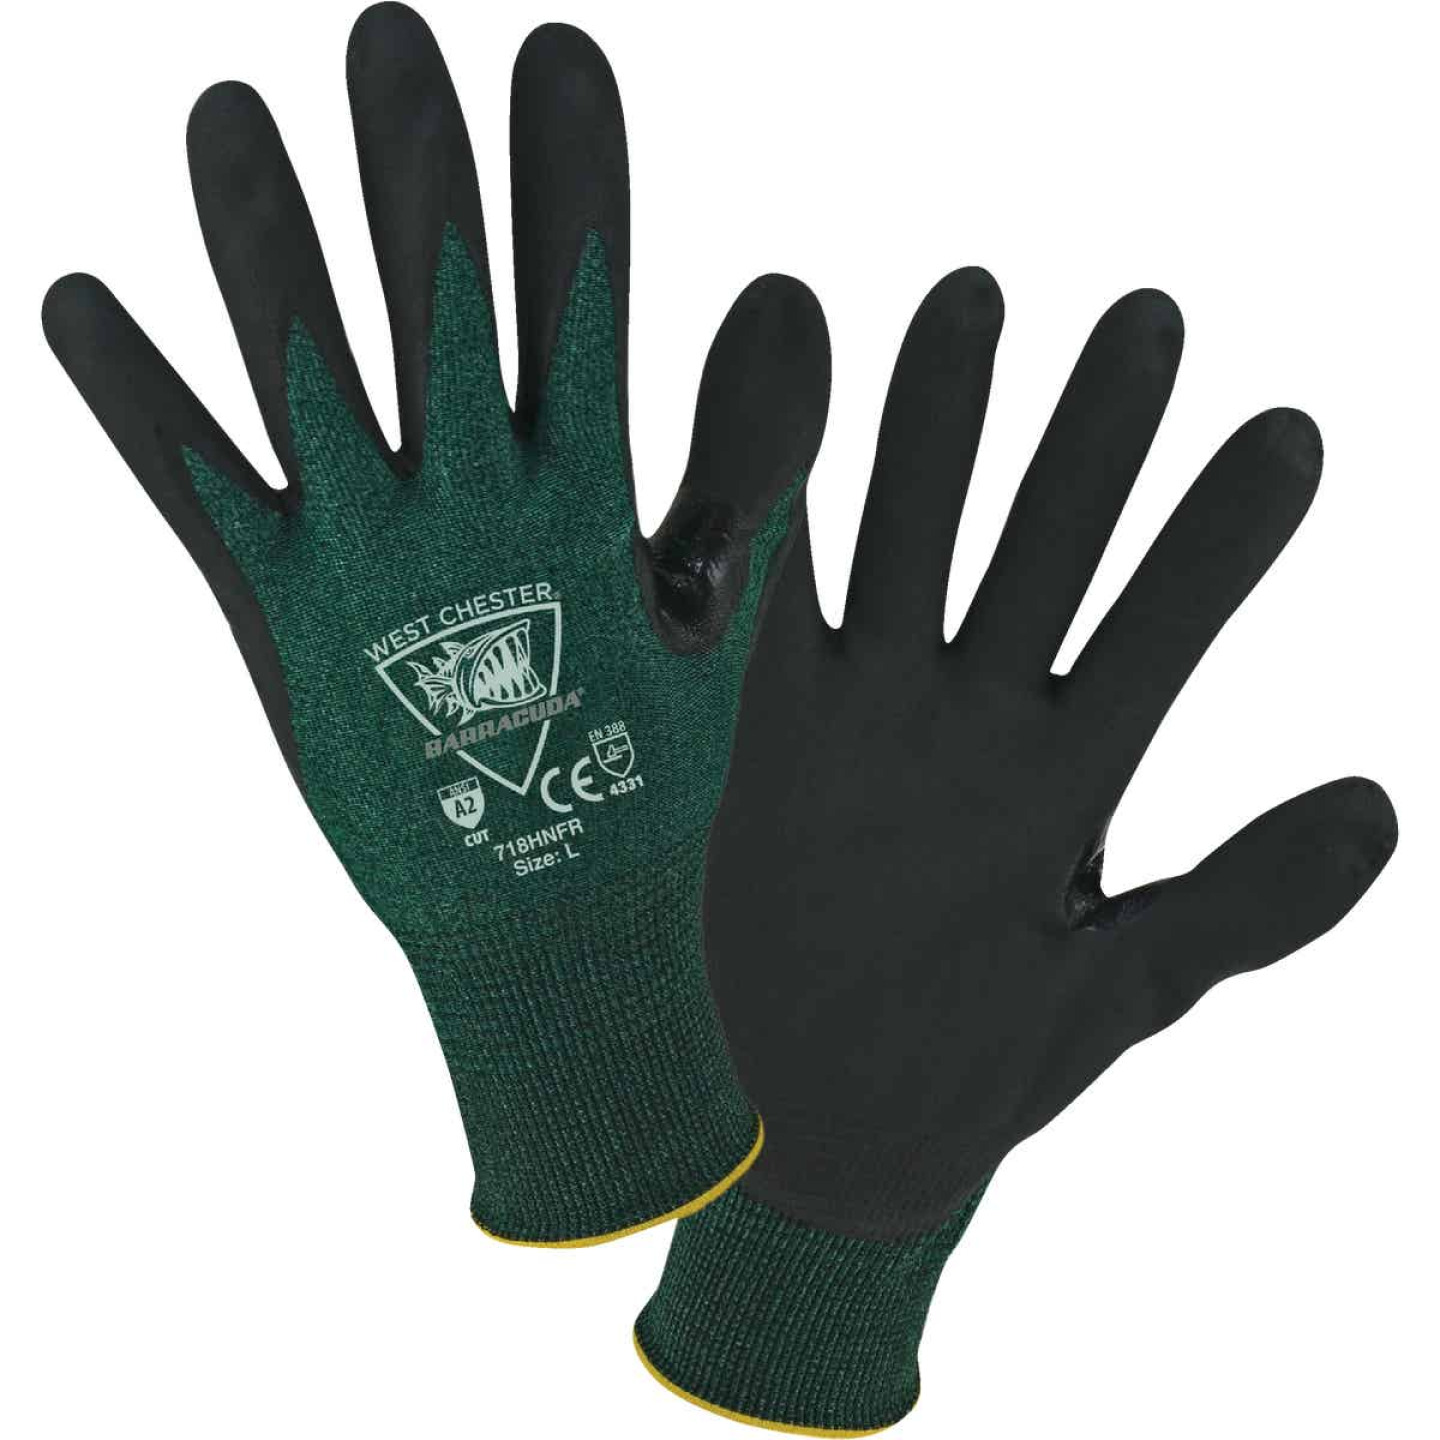 West Chester Protective Gear Barracuda Men's Medium 18-Gauge Nitrile Coated Glove Image 1